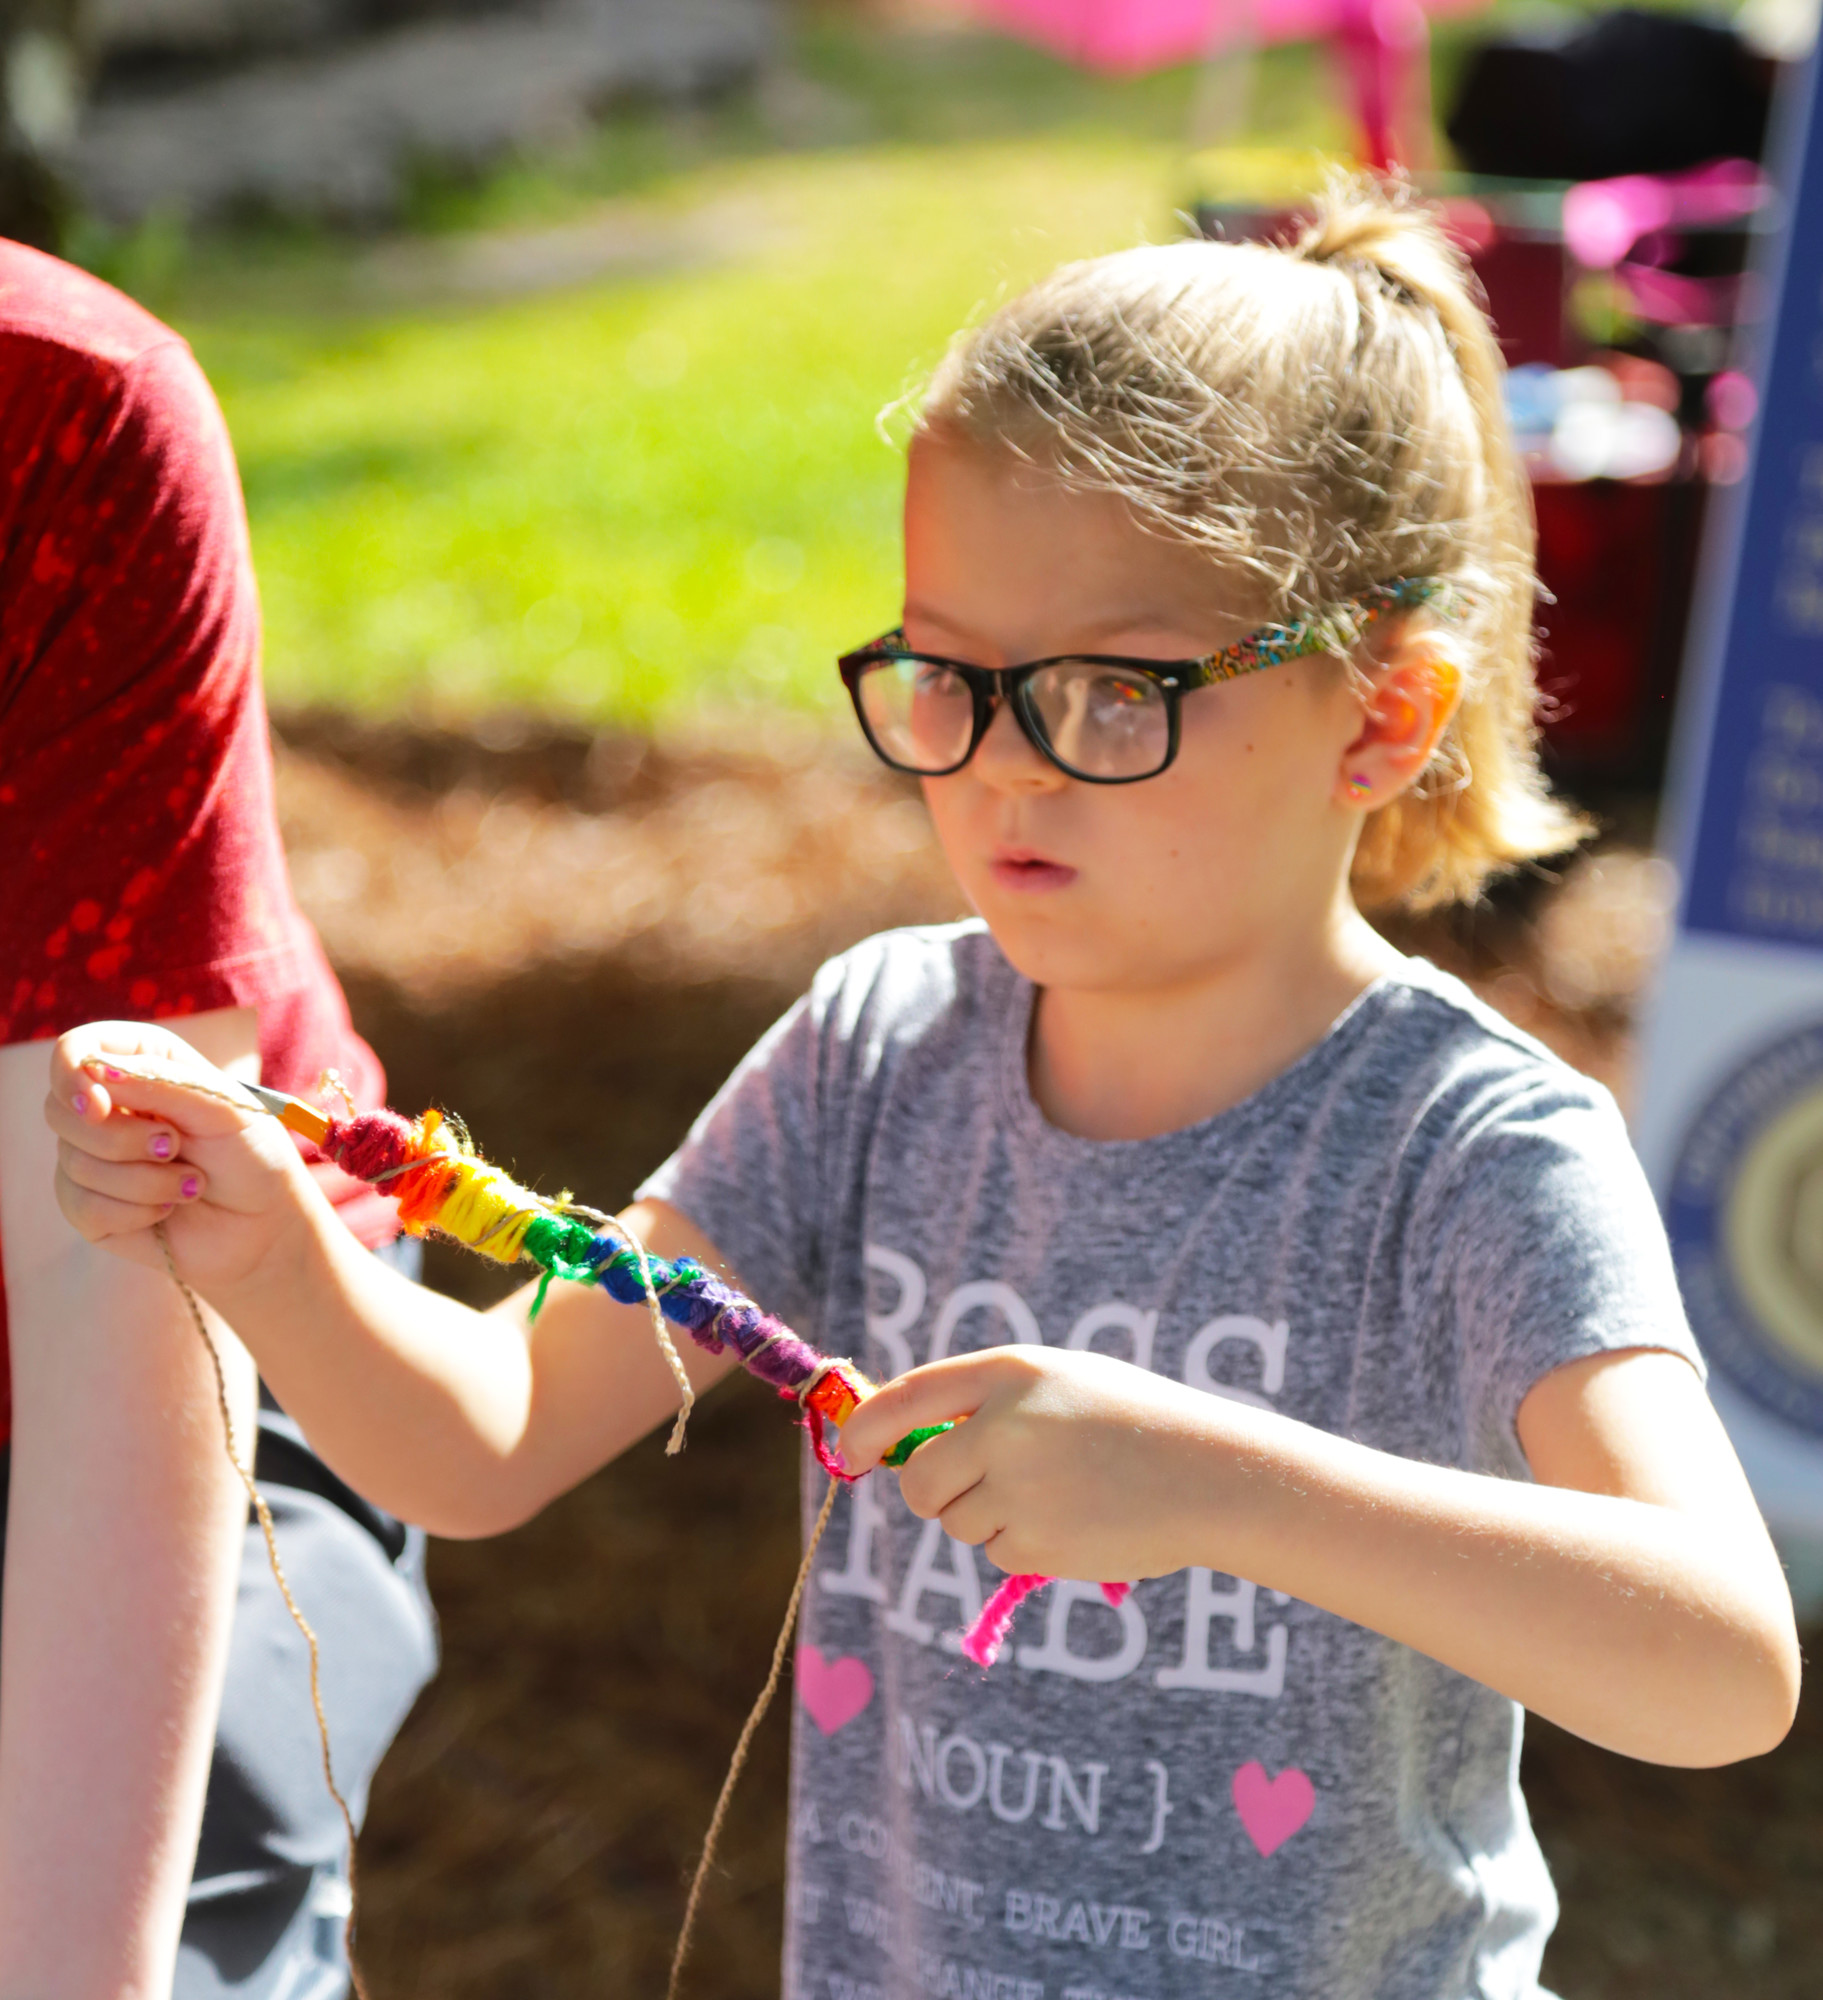 Children decorated pencils attached to sticks to incorporate art and nature during the Earth Day event.